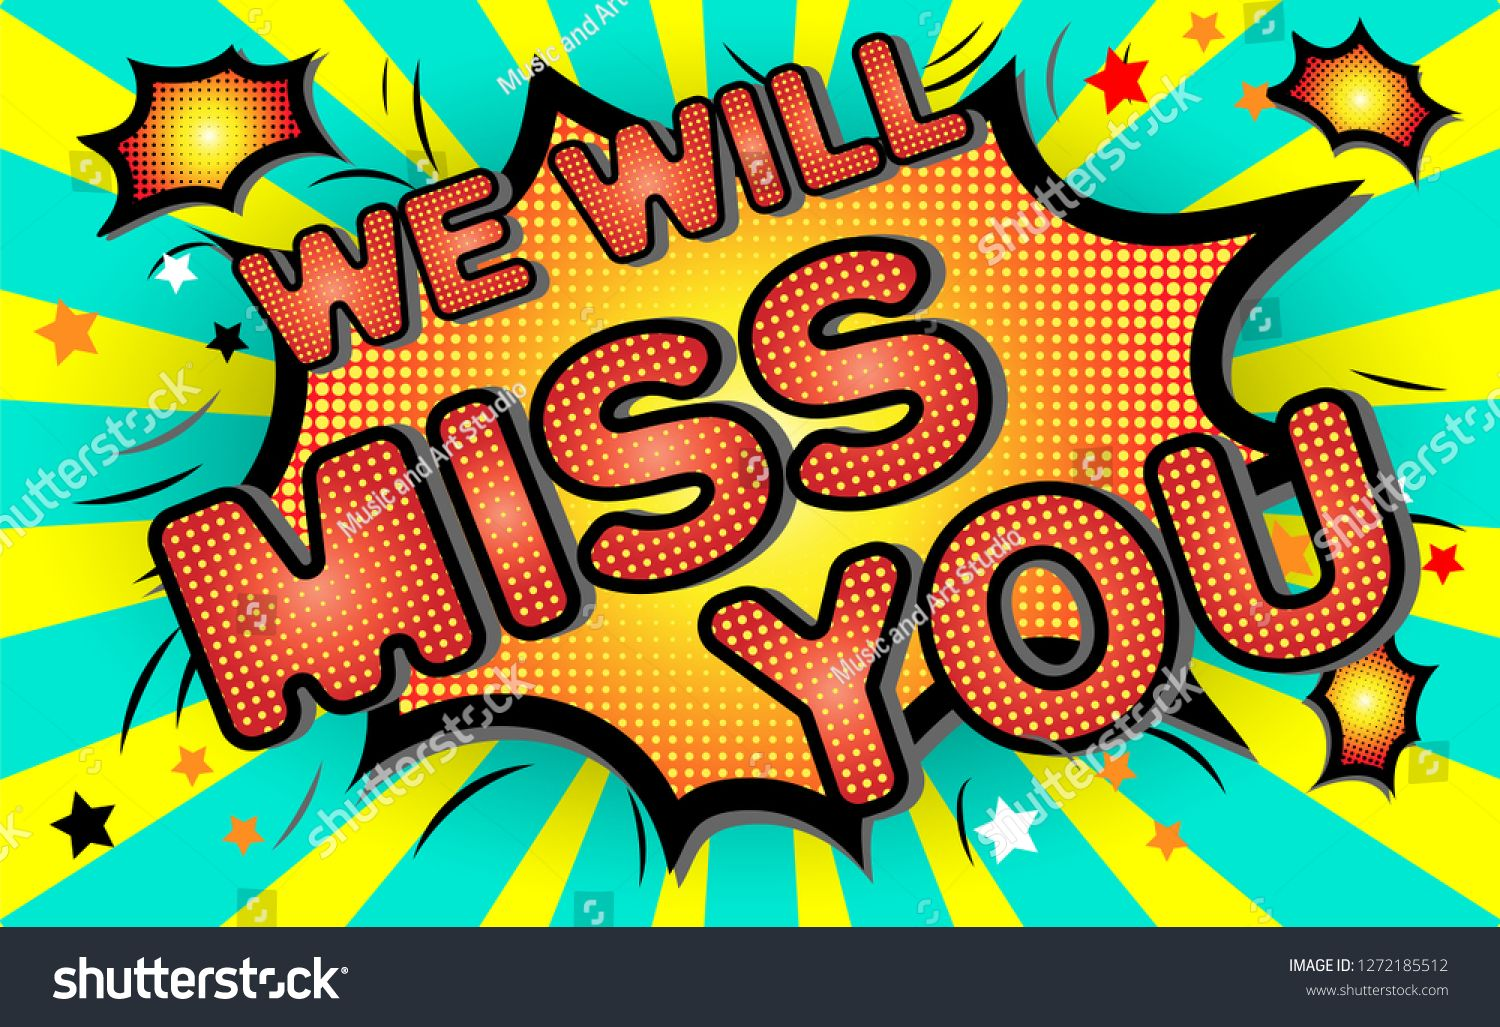 Farewell Party Template We Will Miss You Text Design Pop Art Comic Style Colorful Background For T Shirt Pop Art Comic Inspirational Artwork Banner Printing